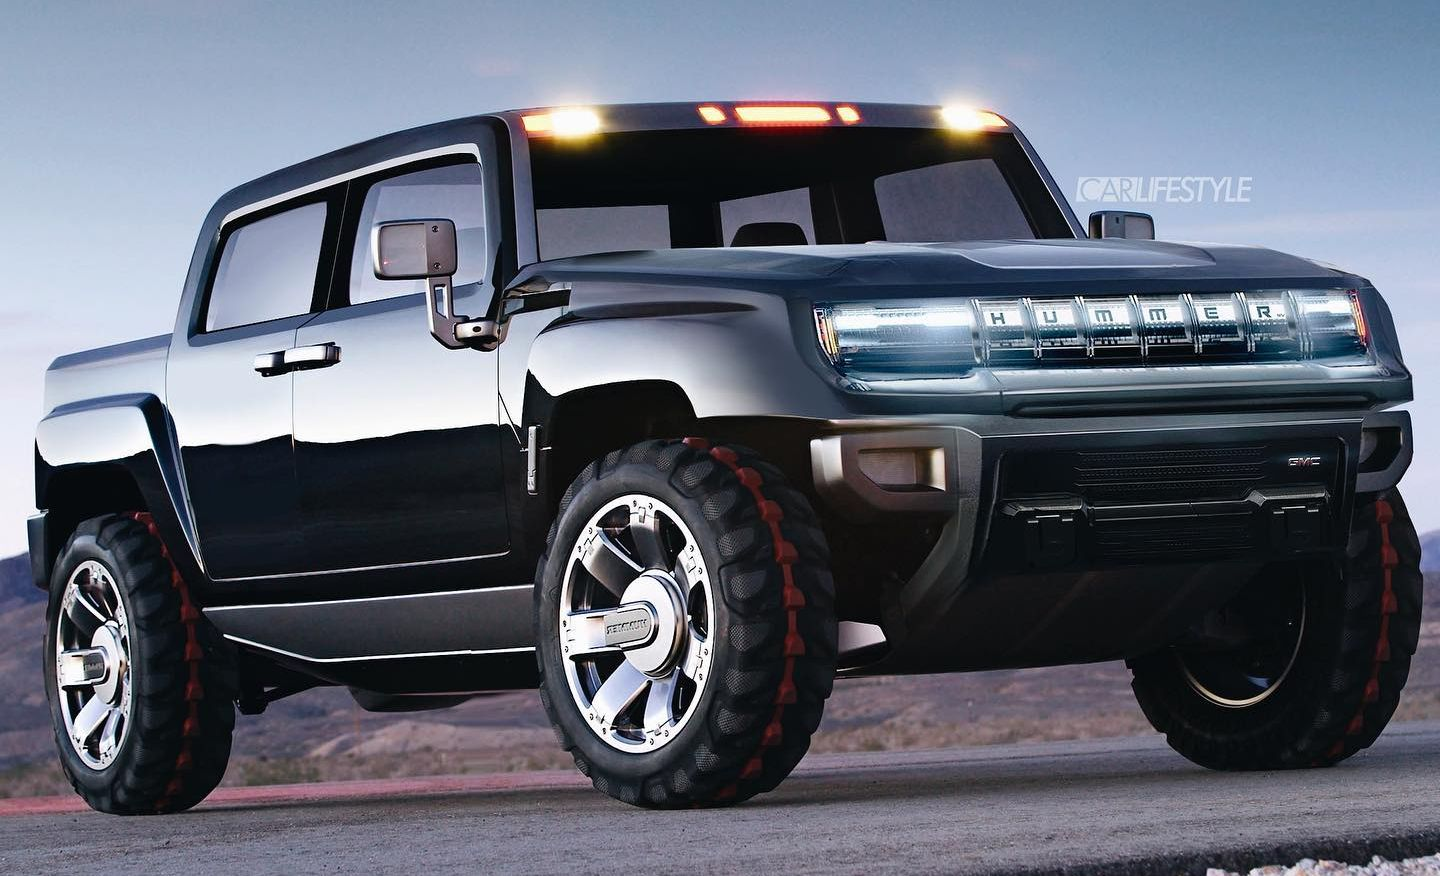 New 2021 Gmc Hummer Ev Rendering Looks Just About Right Top Speed In 2020 Hummer Truck Pickup Trucks Hummer